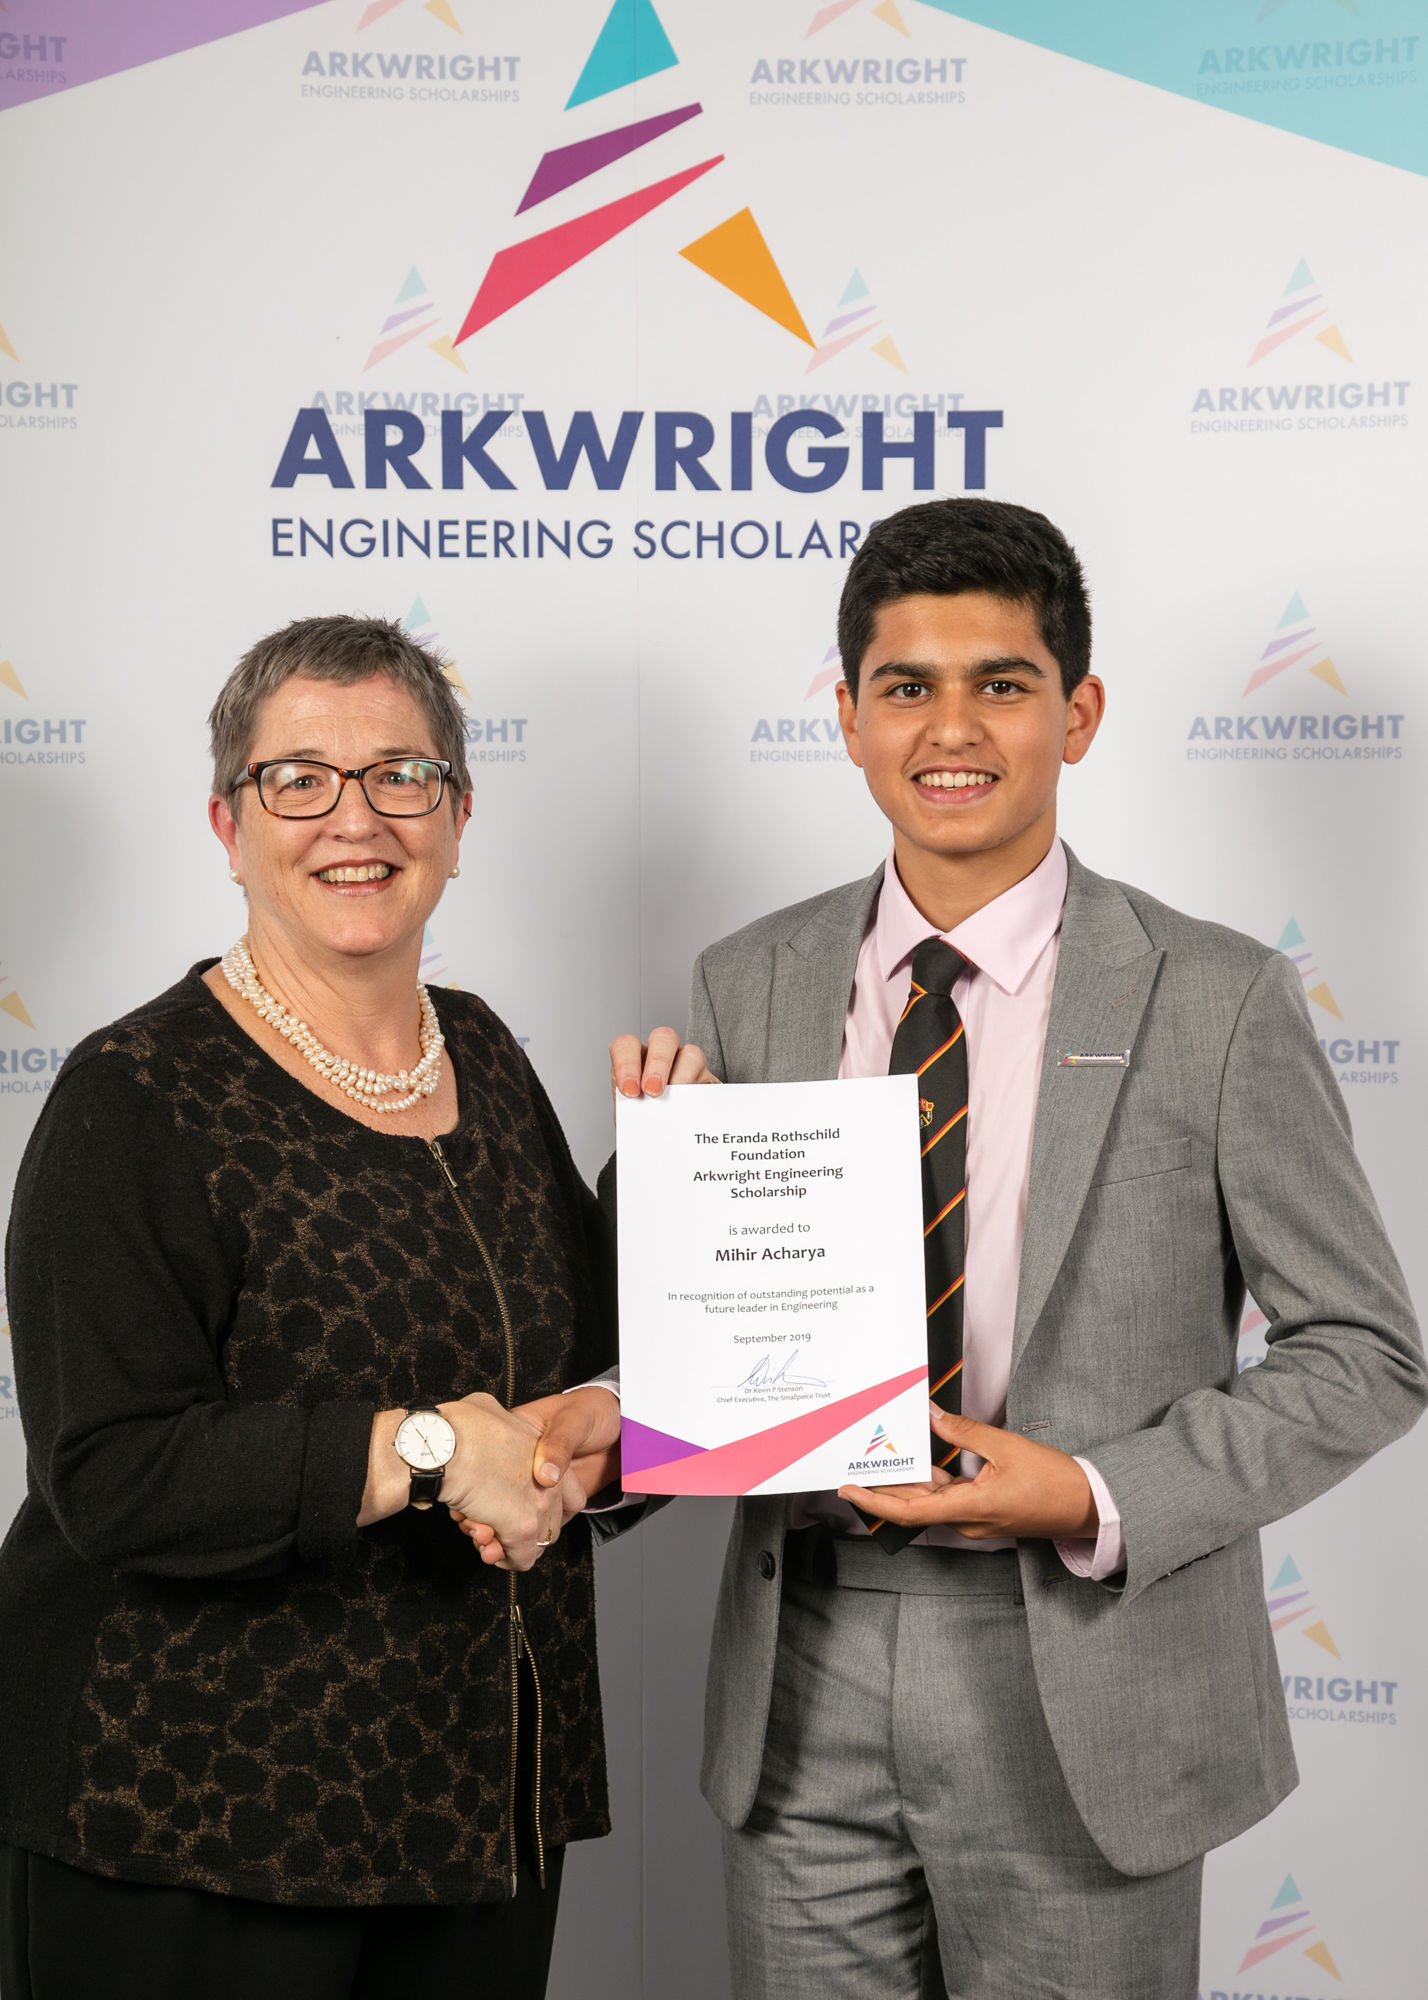 Arkwright scholarship awards 173